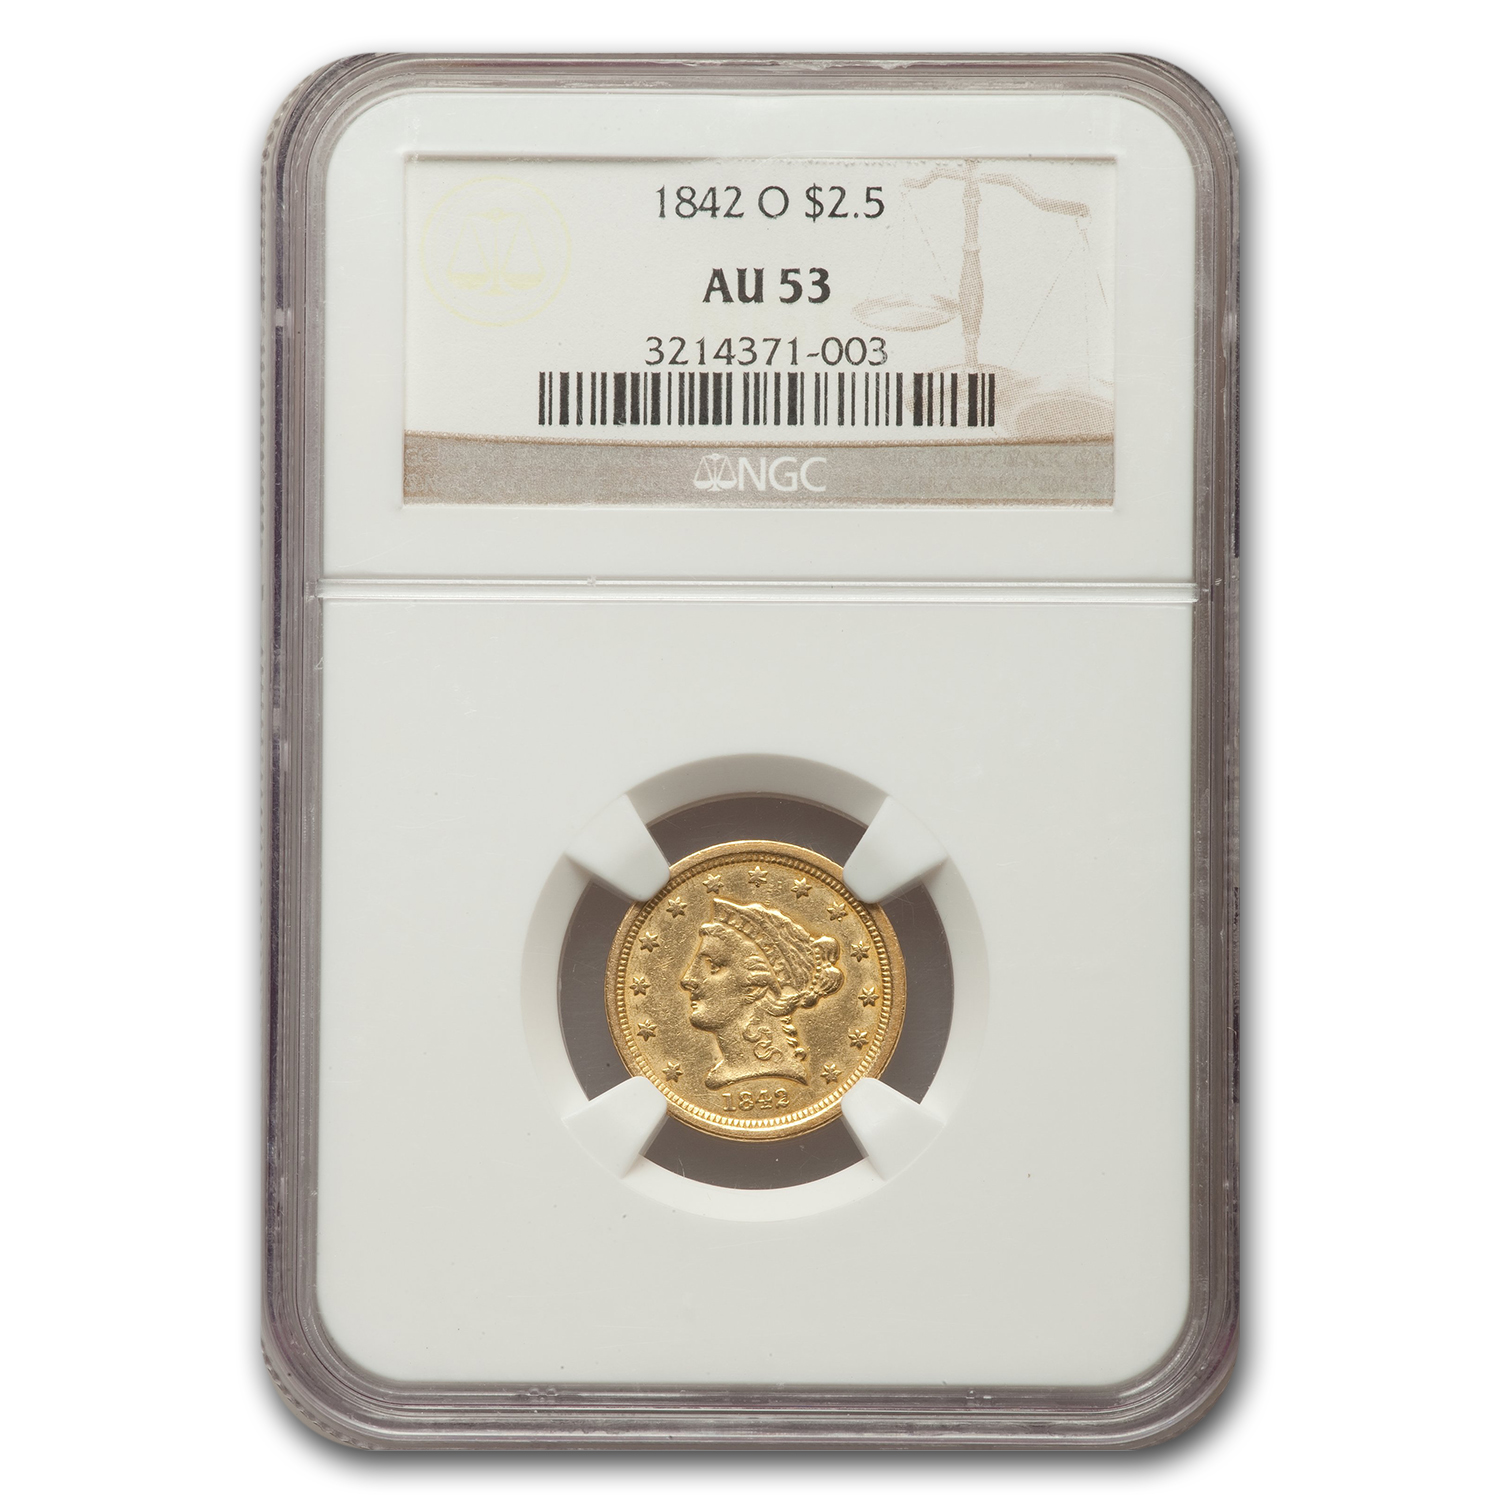 1842 2.5 Liberty Quarter Eagle Almost Unc - 53 NGC